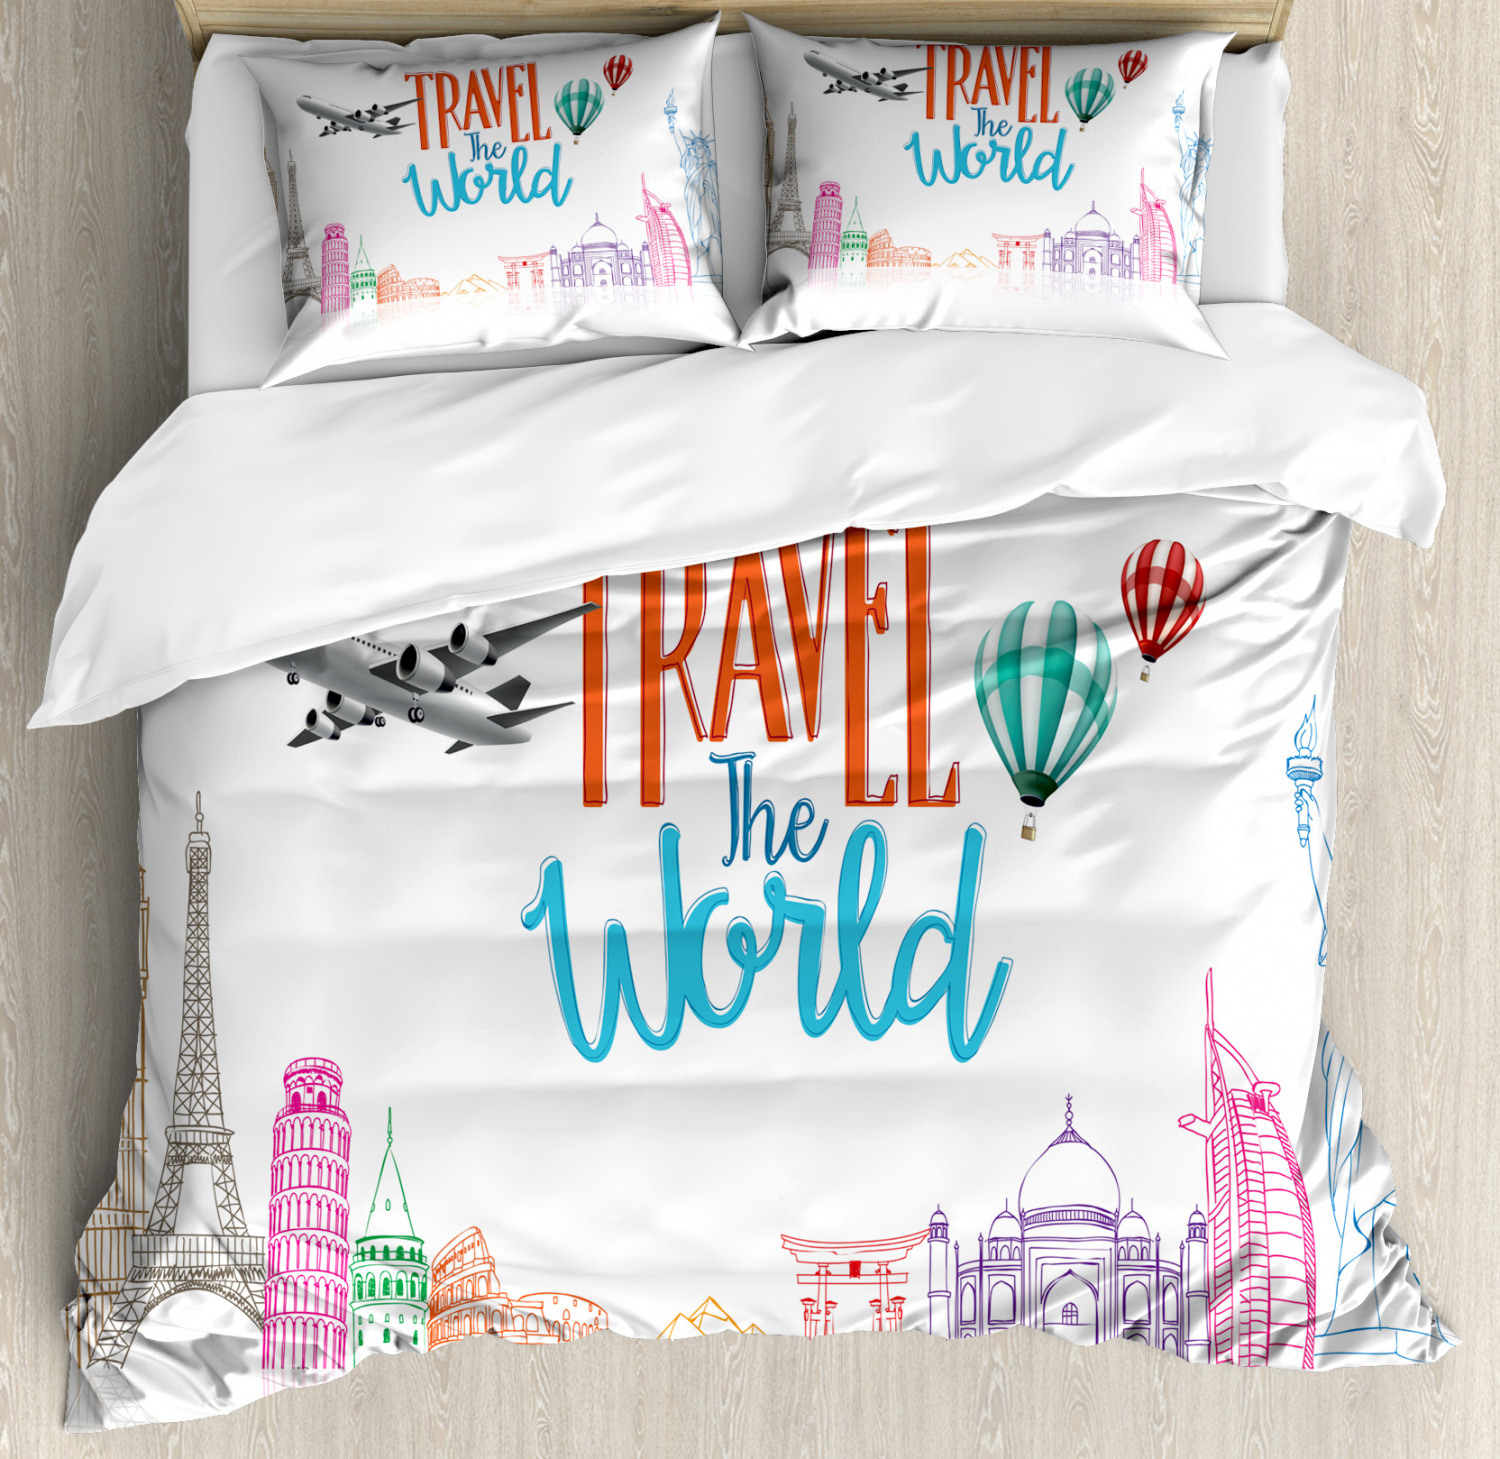 Quote Duvet Cover Set with Pillow Shams Travel World Letteri